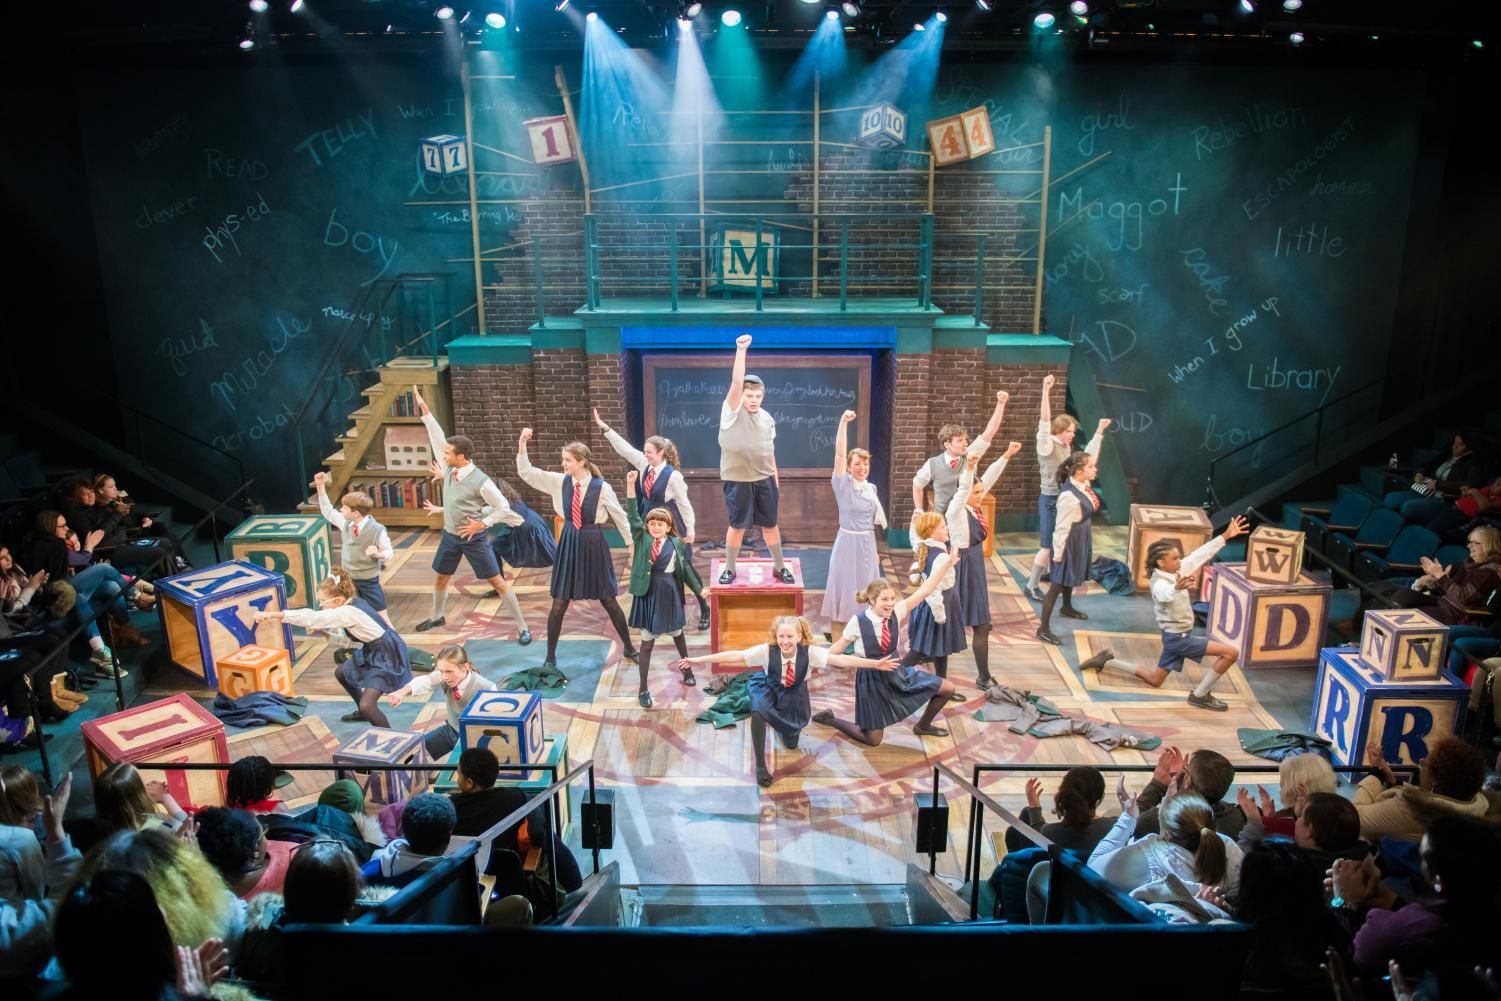 First stages matilda brings it matc times musicals